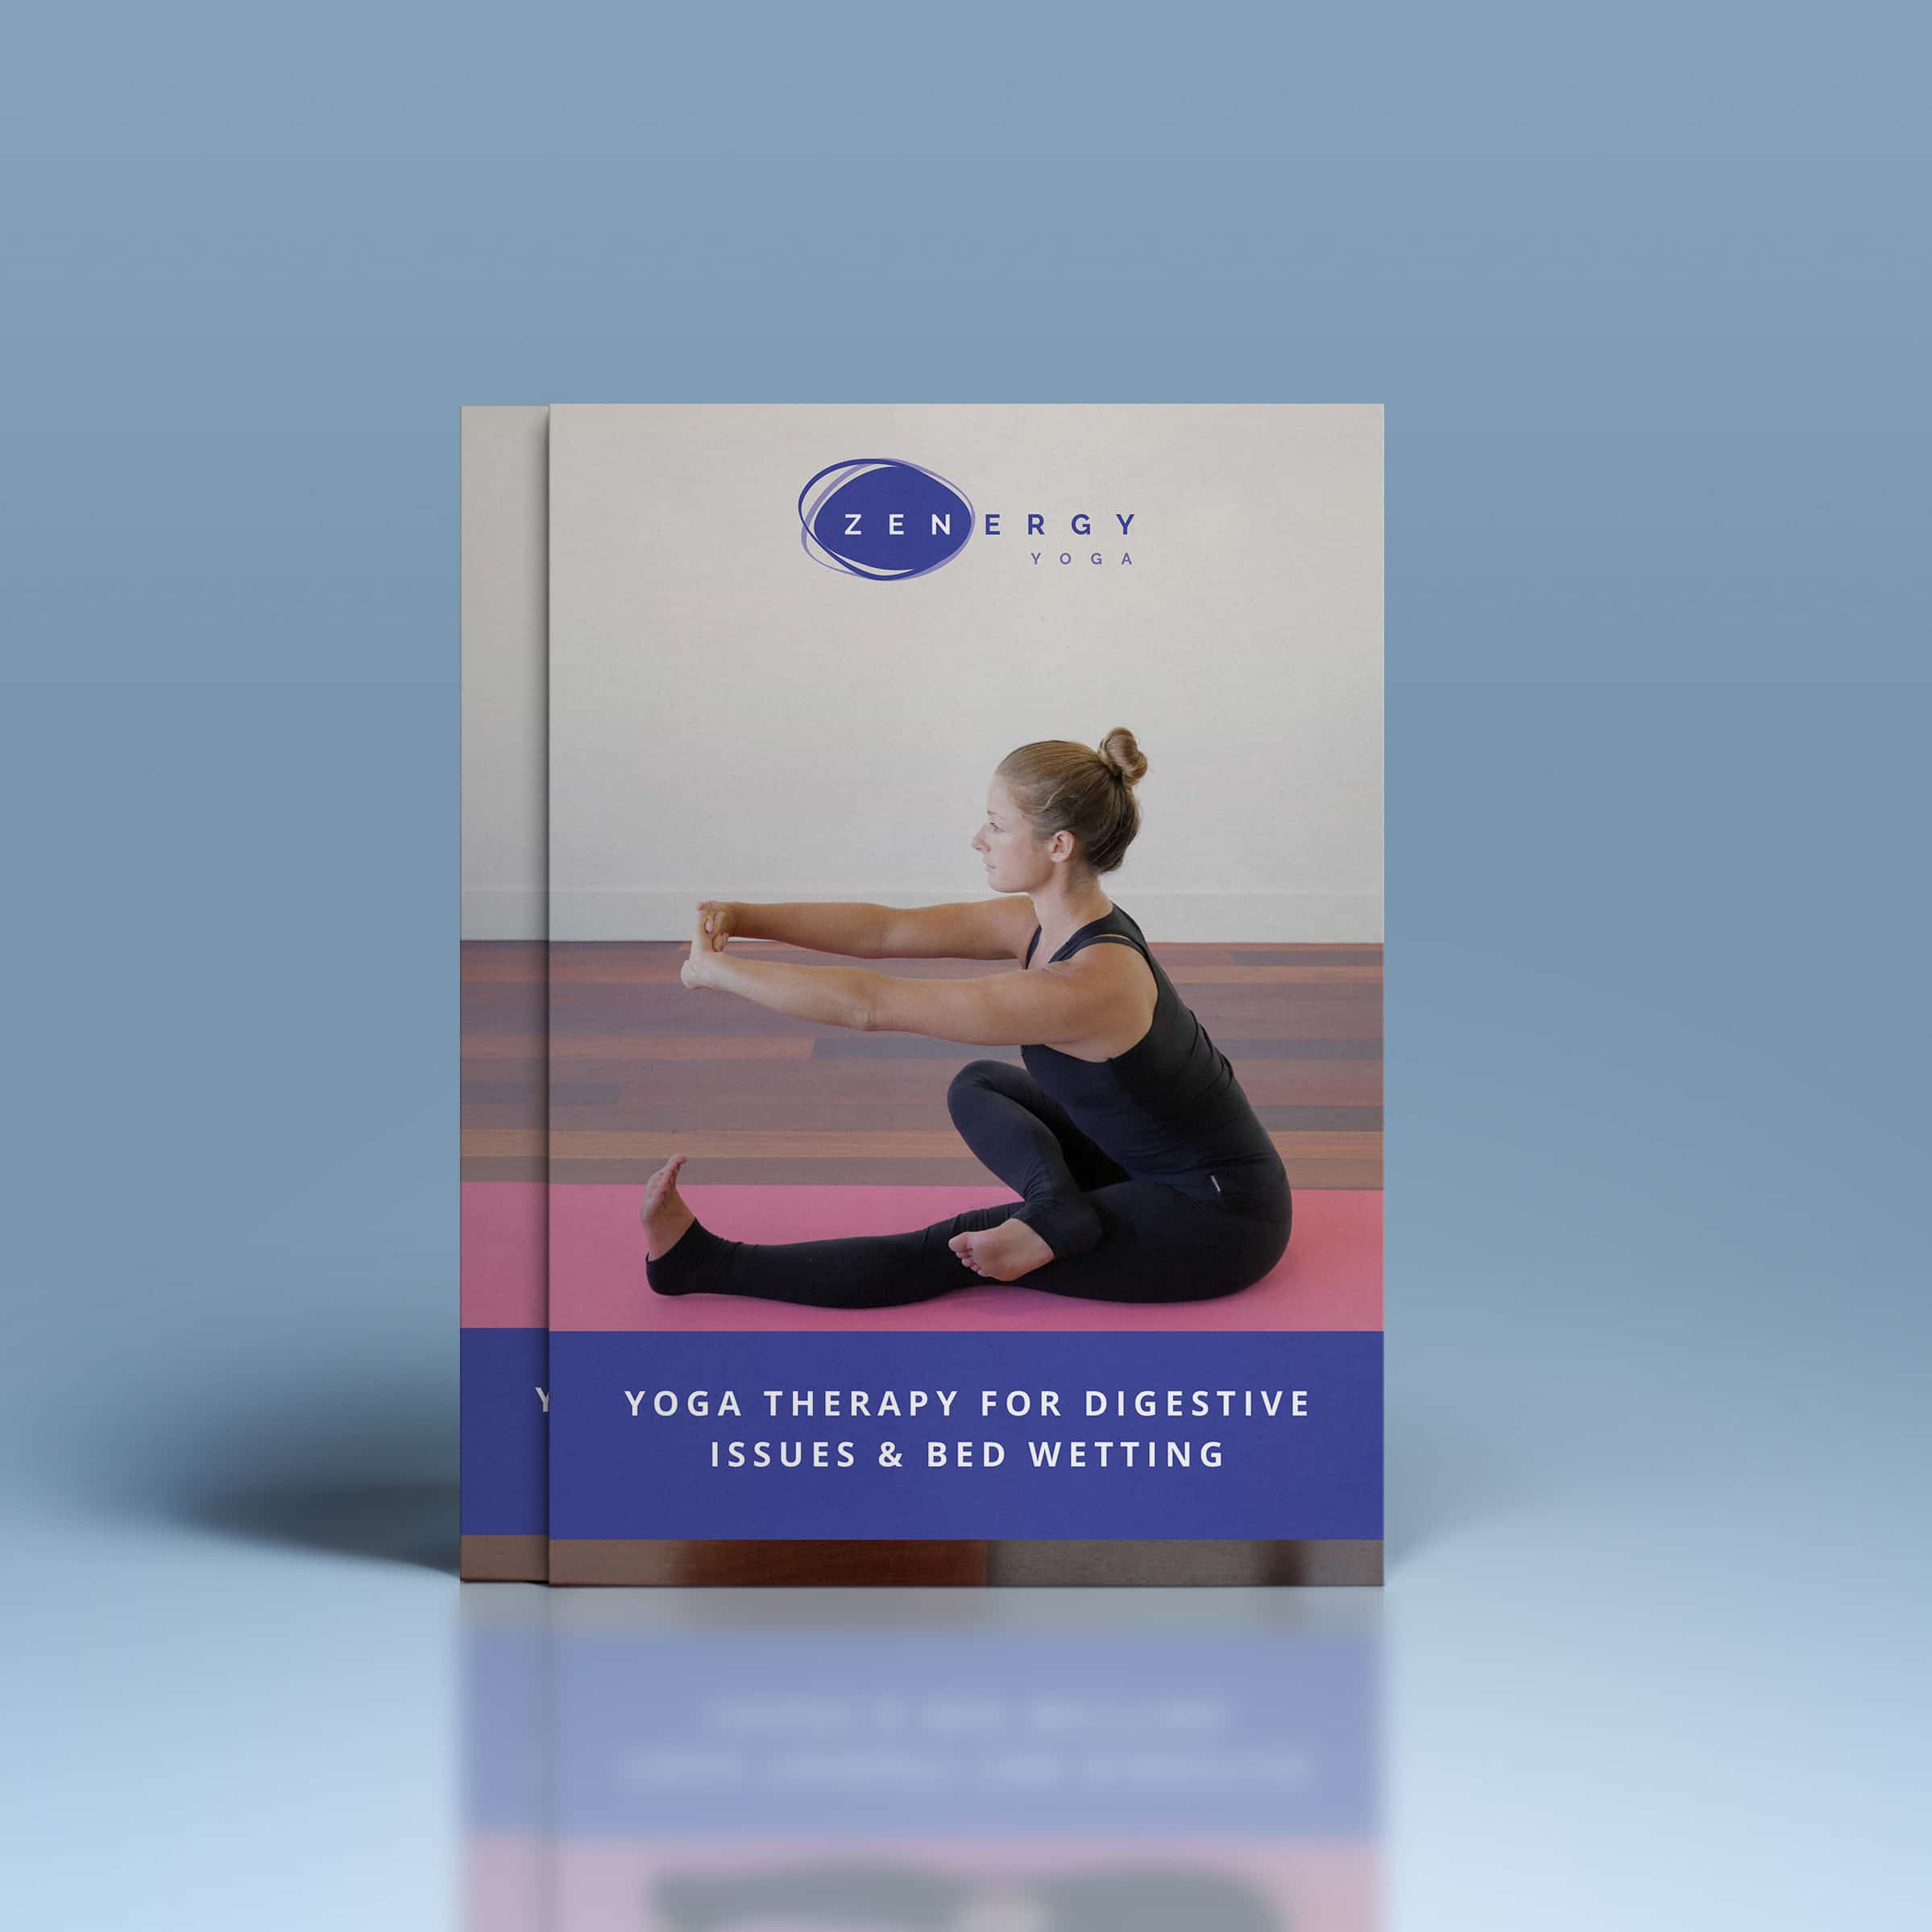 Yoga Therapy for Digestive Issues & Bed Wetting